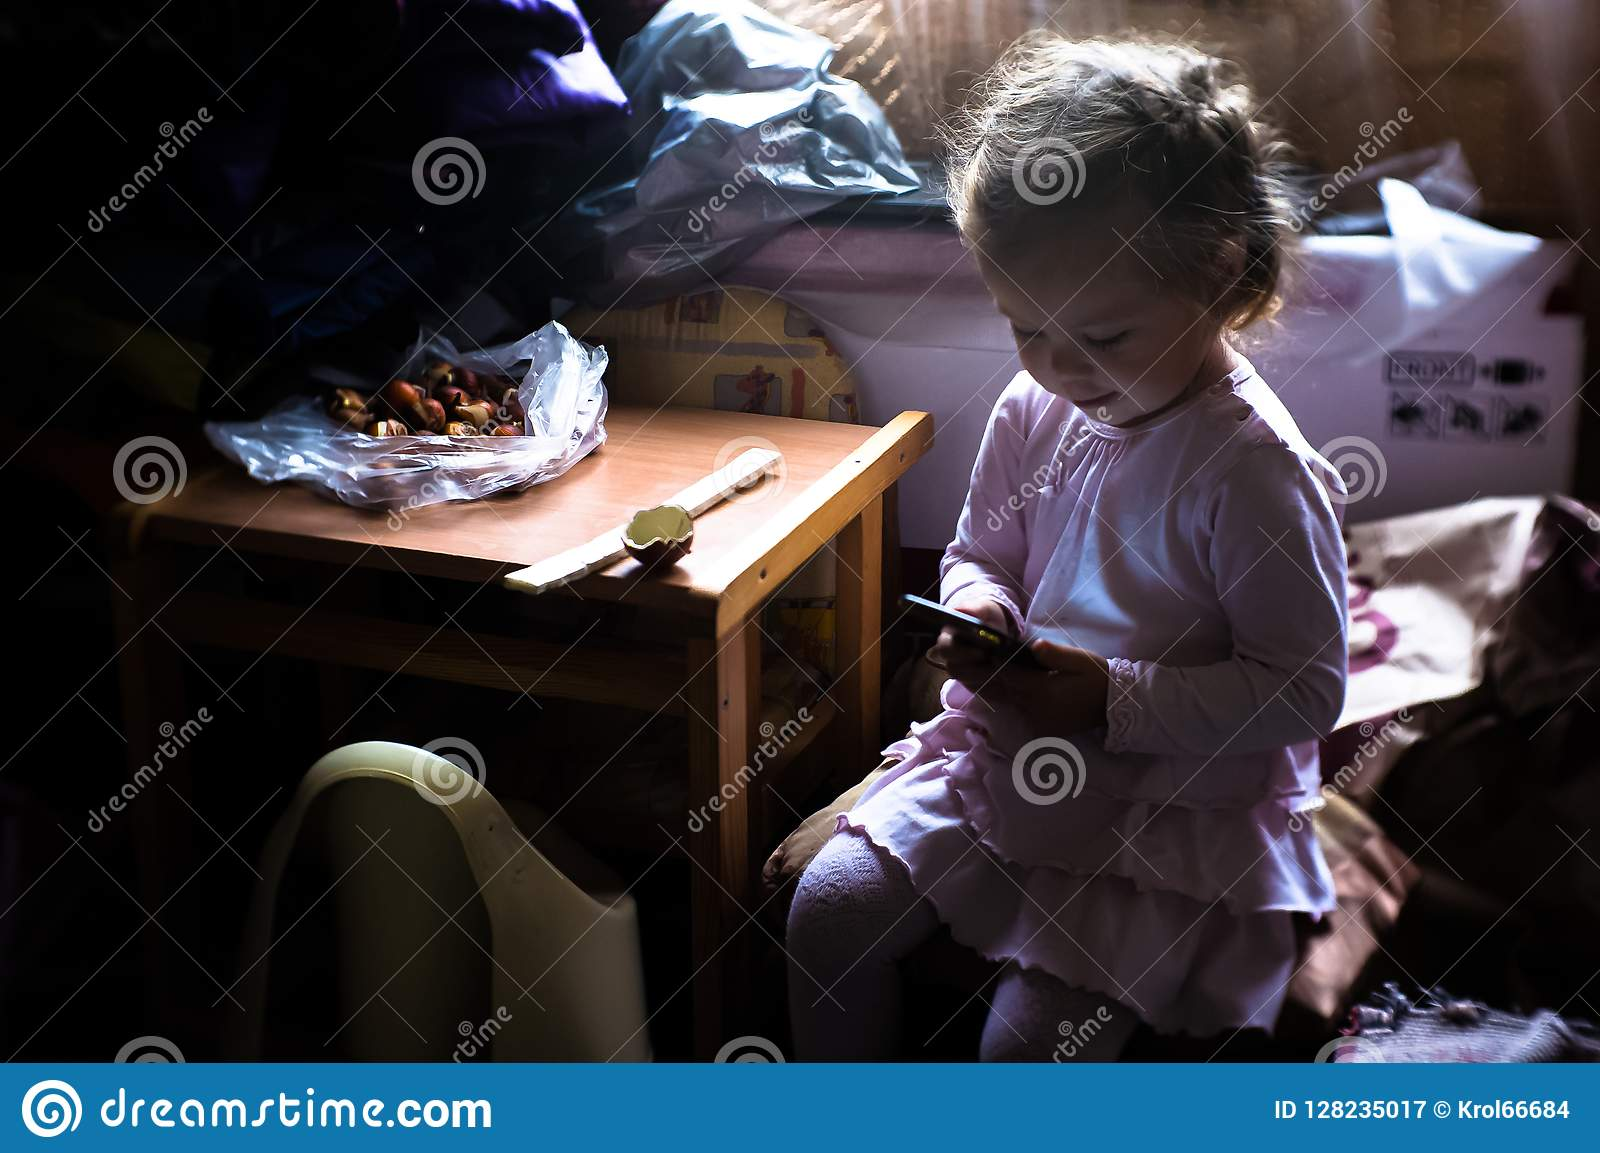 A little girl learns about the Internet through a mobile phone.